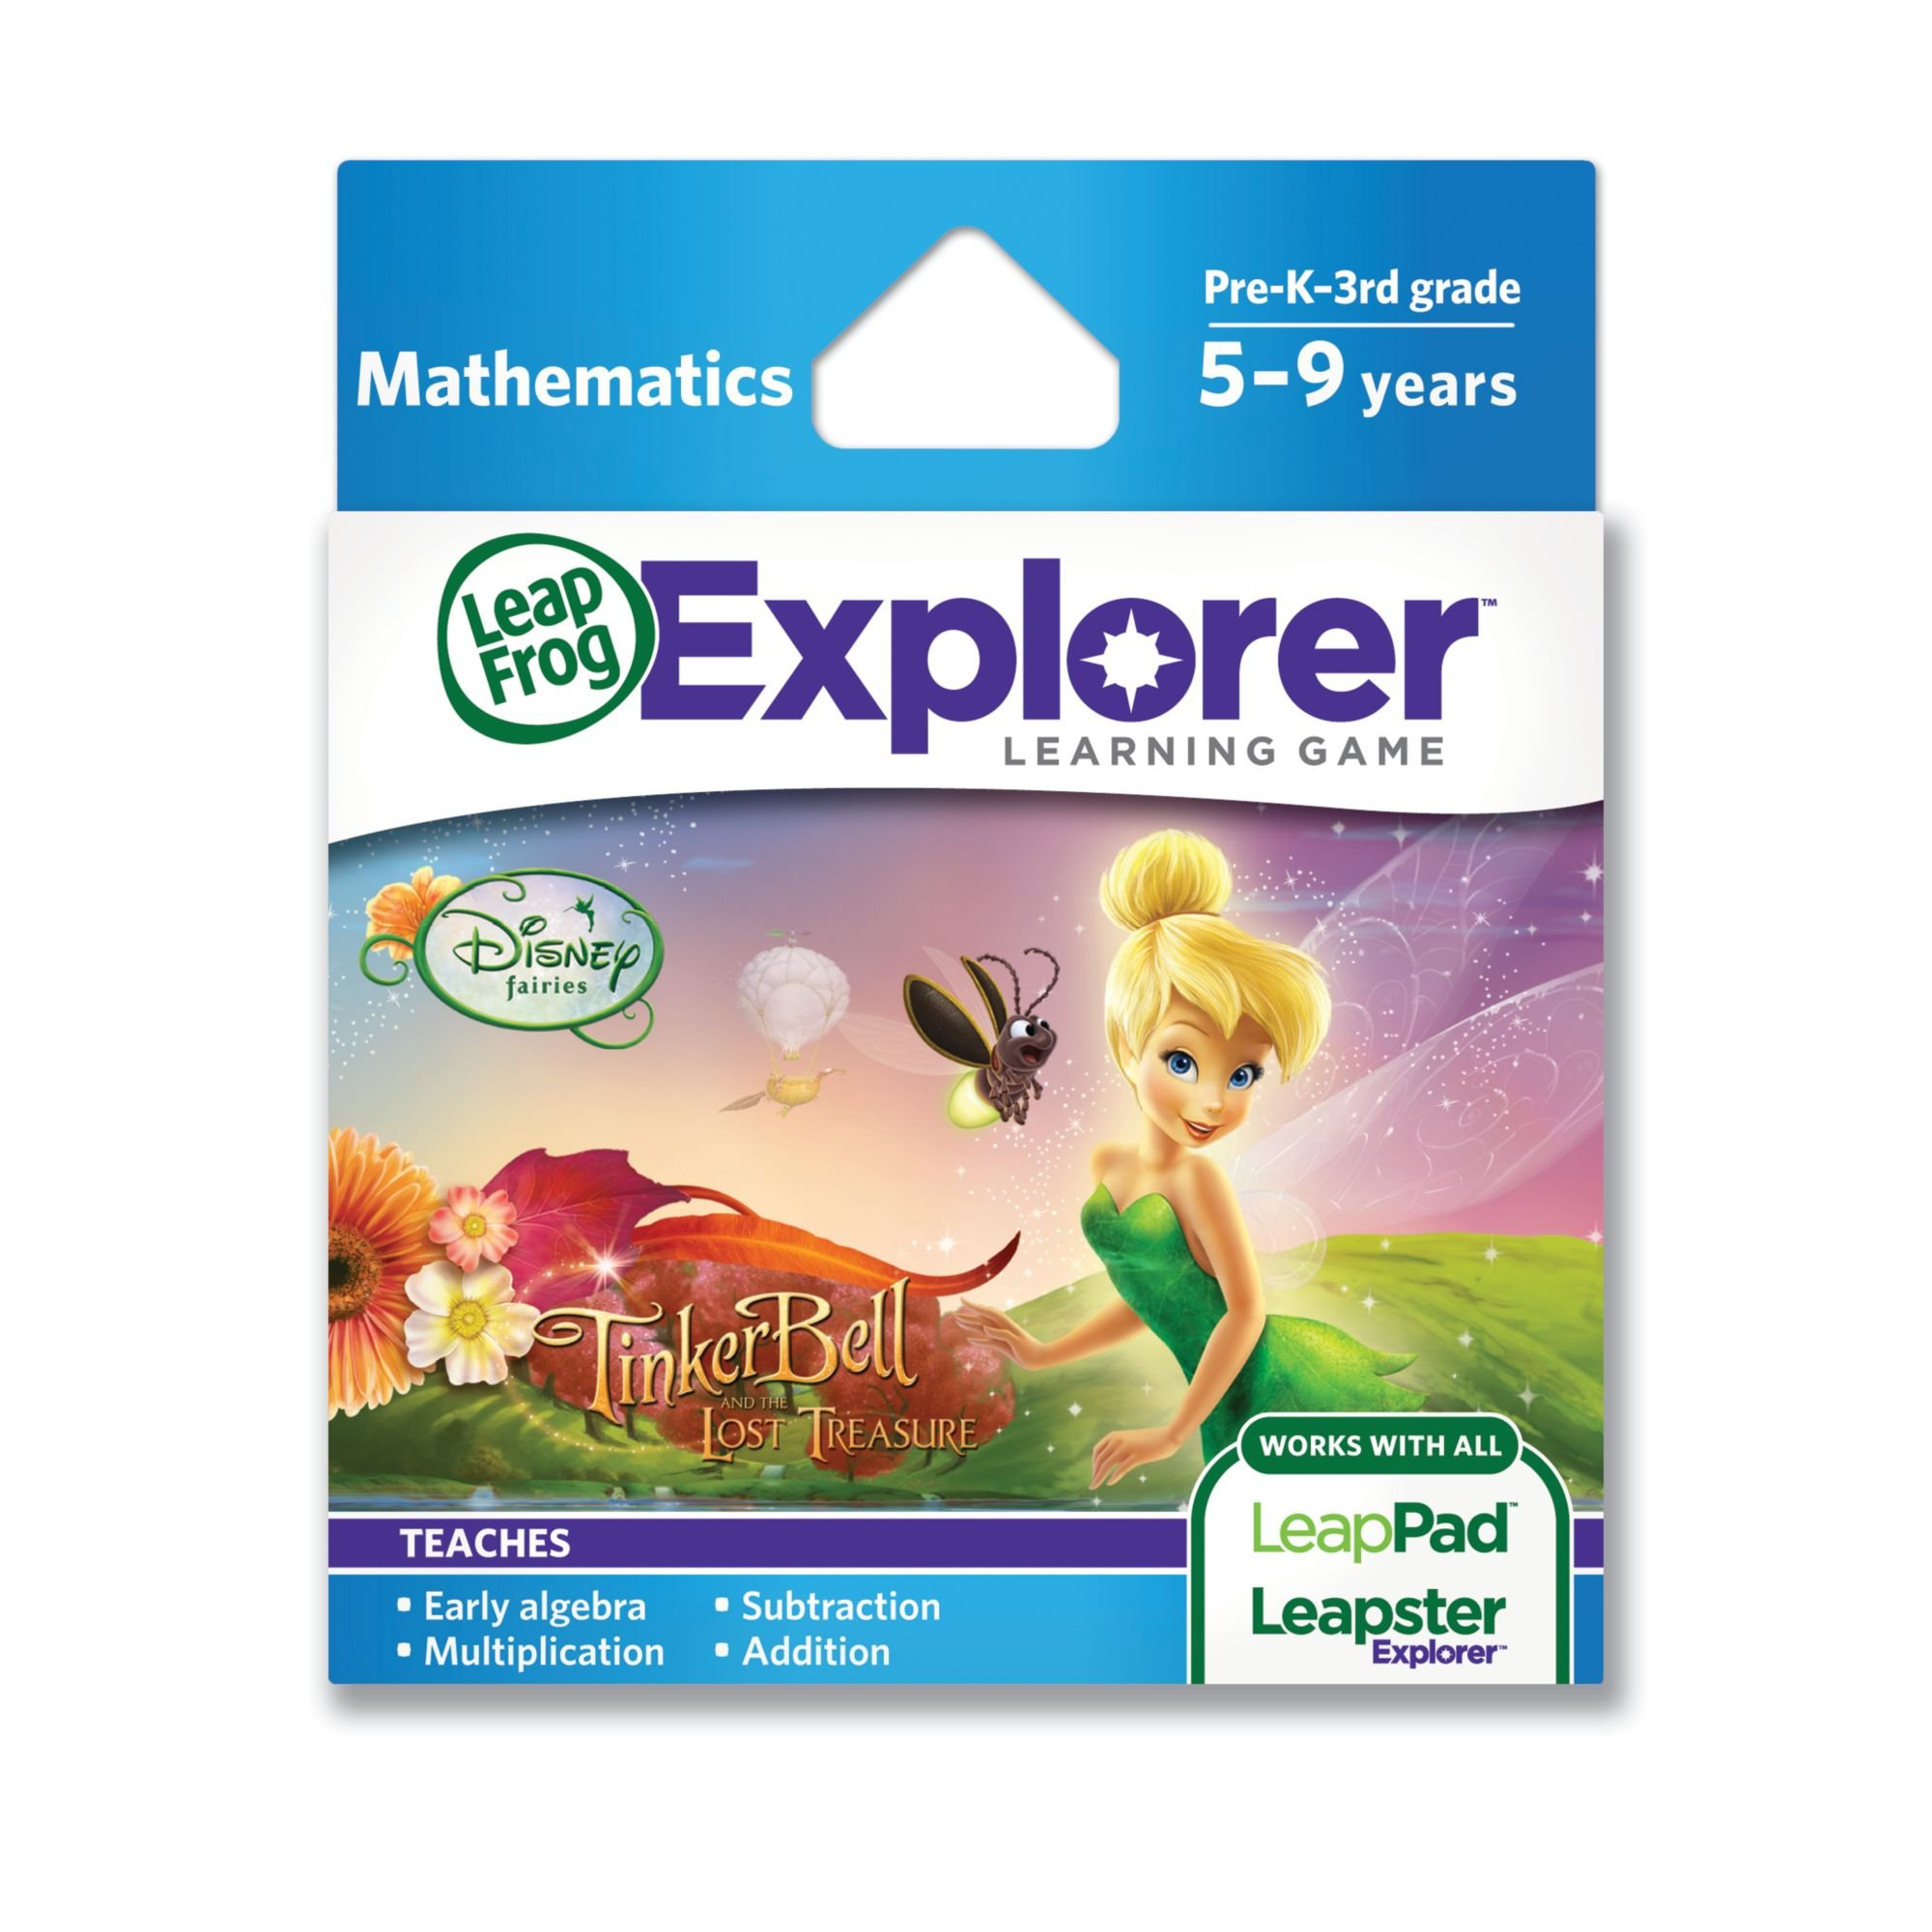 LeapFrog Explorer Learning Game: Disney Fairies: Tinker Bell and the Lost Treasure (works with LeapPad & Leapster Explorer) by LeapFrog